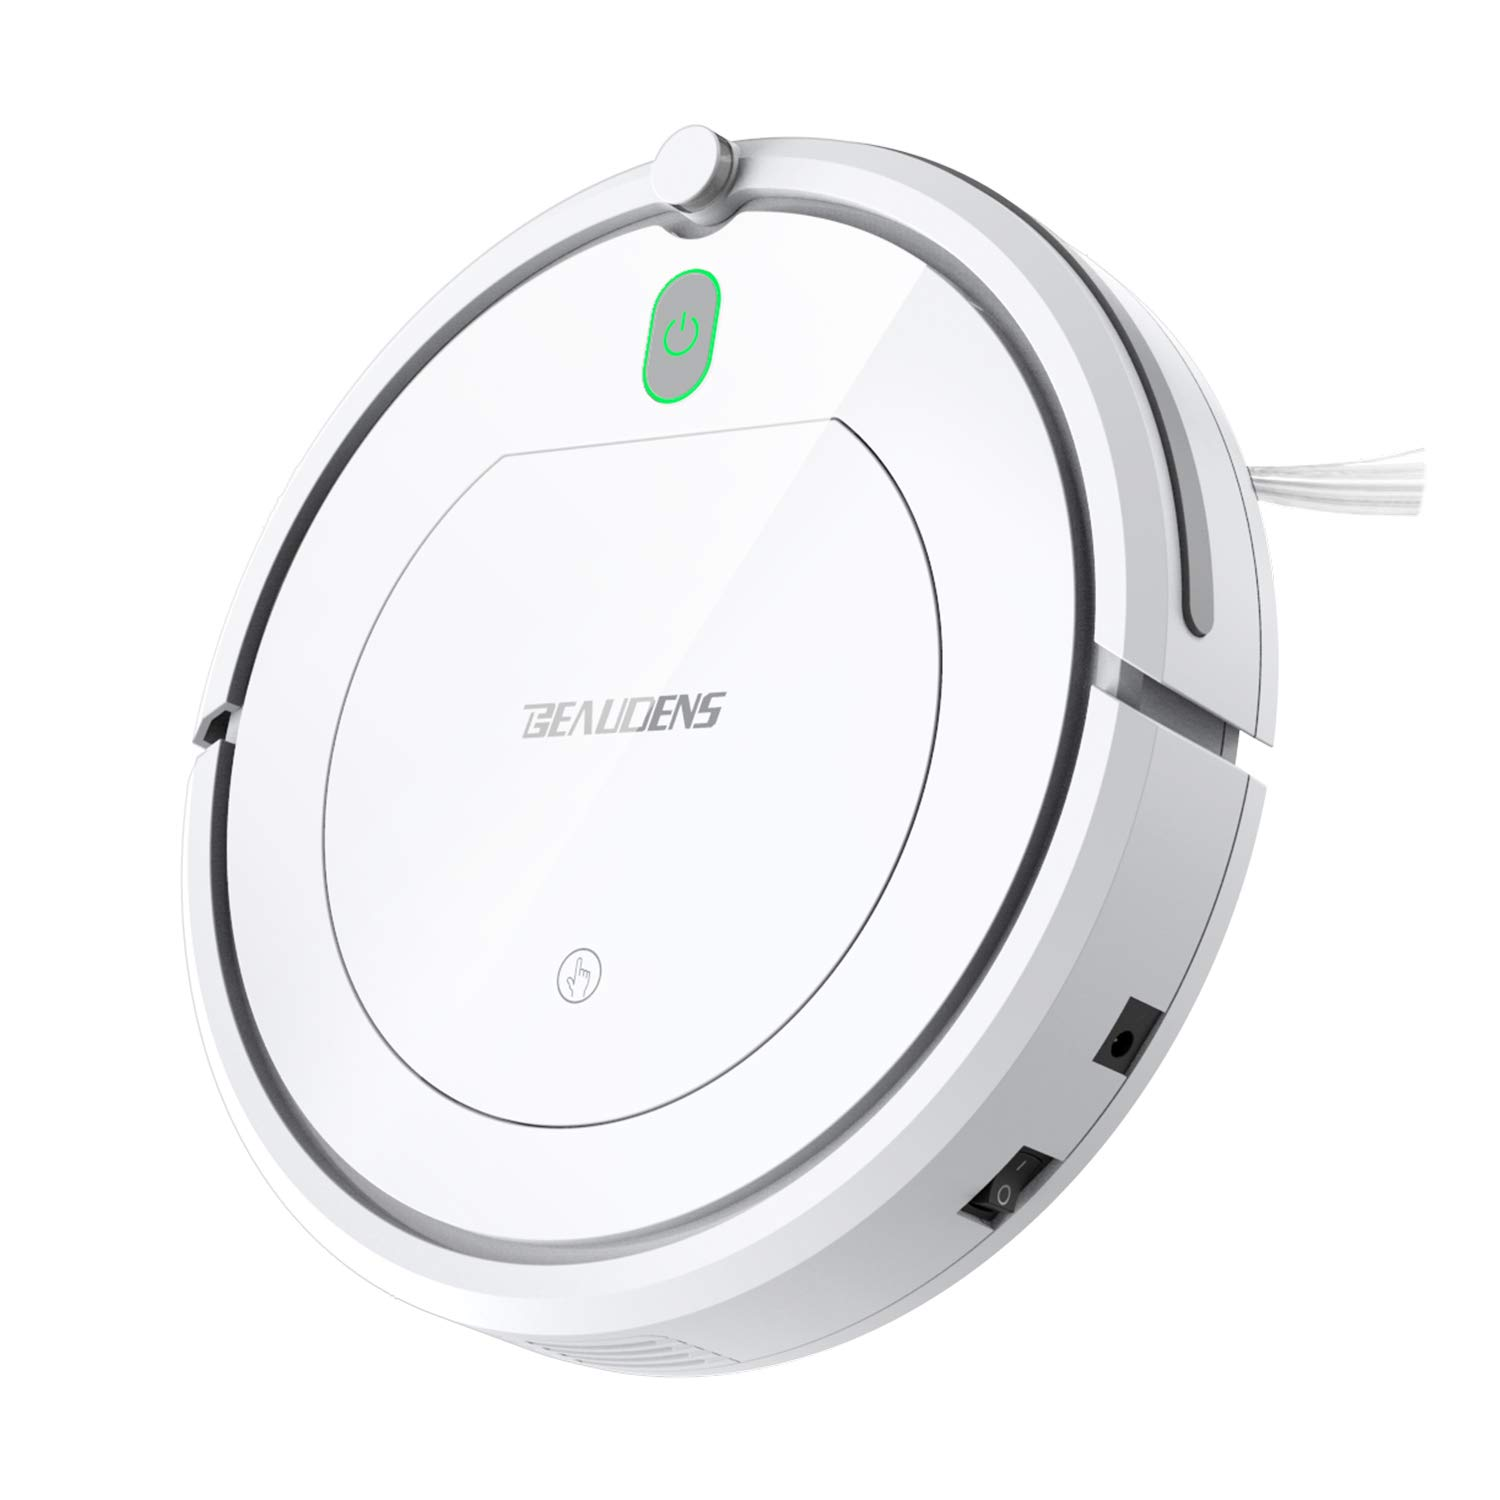 Best Robot Vacuum for Dog Hair 5